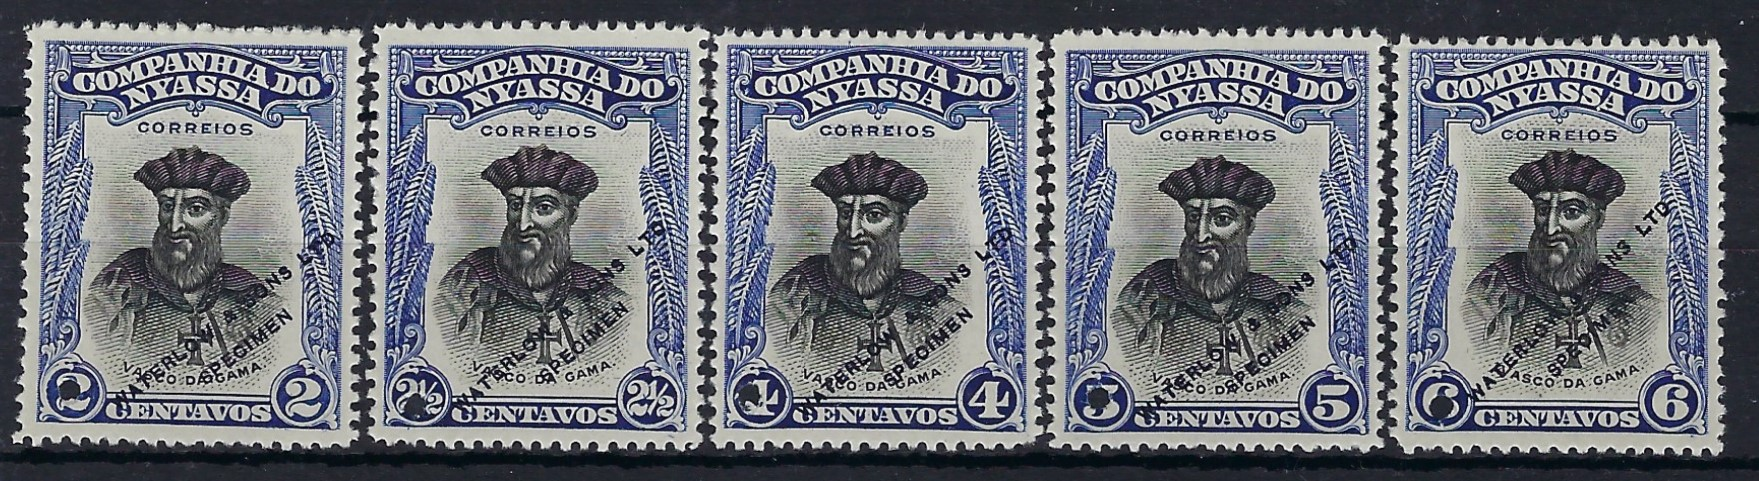 Nyassa Company 1921-23 Perf 12½ Vasco da Gama 2c., 2½c., 4c., 5c. and 6c.  in blue and black unissued colours overprinted WATERLOW & SONS LTD/ SPECIMEN, unused without gum.